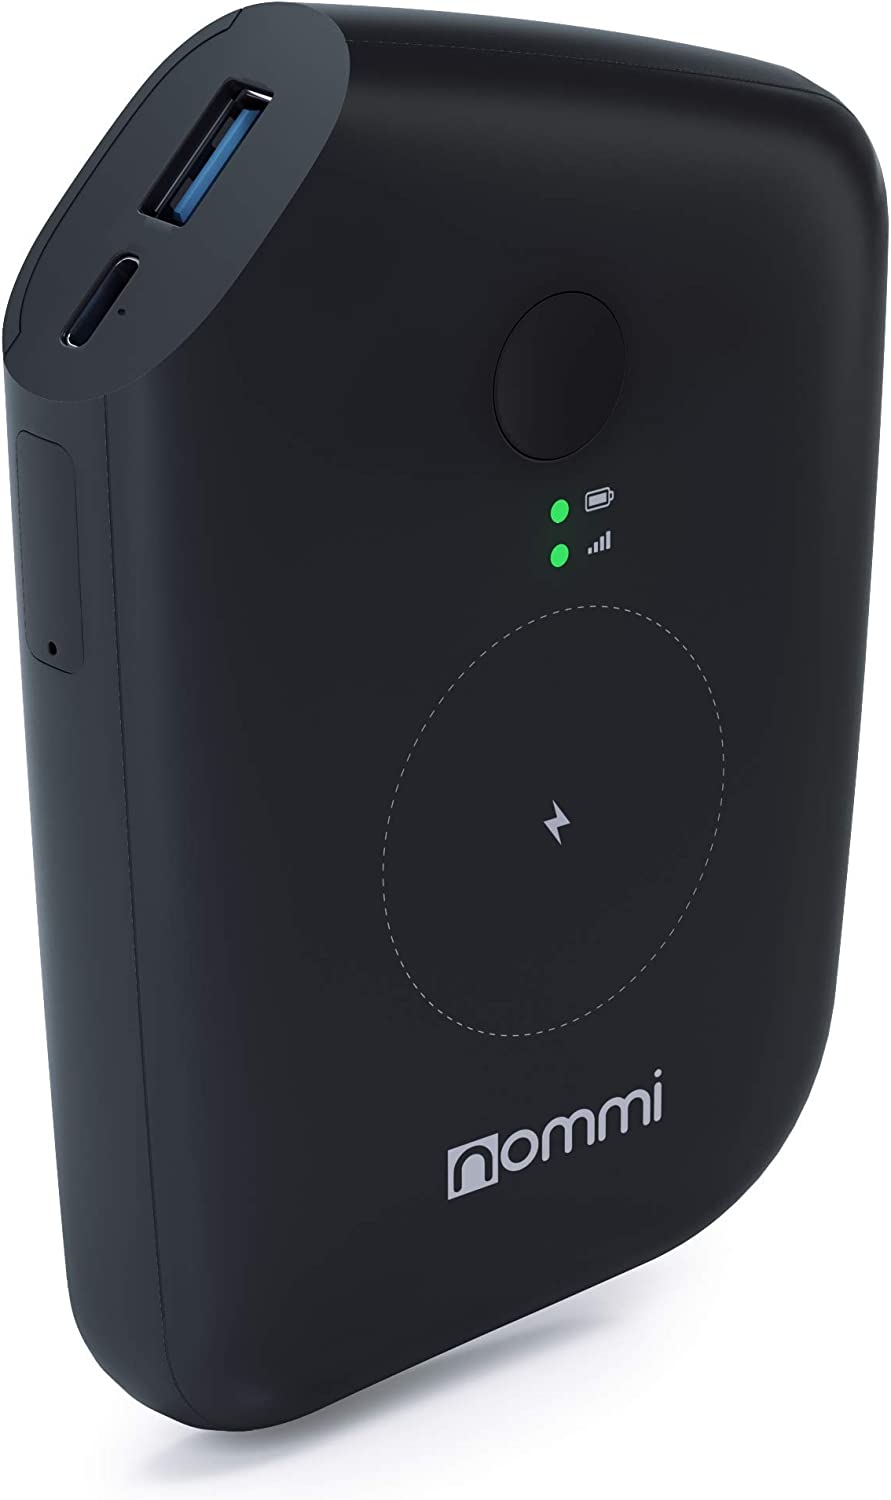 Nommi: Mobile Hotspot | Secured 4G LTE Unlocked Wi-Fi Hotspot Device | Pay as You Go Portable MiFi Hotspot | 10GB US Data + VPN | Wi-Fi Extender | eSIM/SIM in 150 Countries | 10000 mAh Power Bank